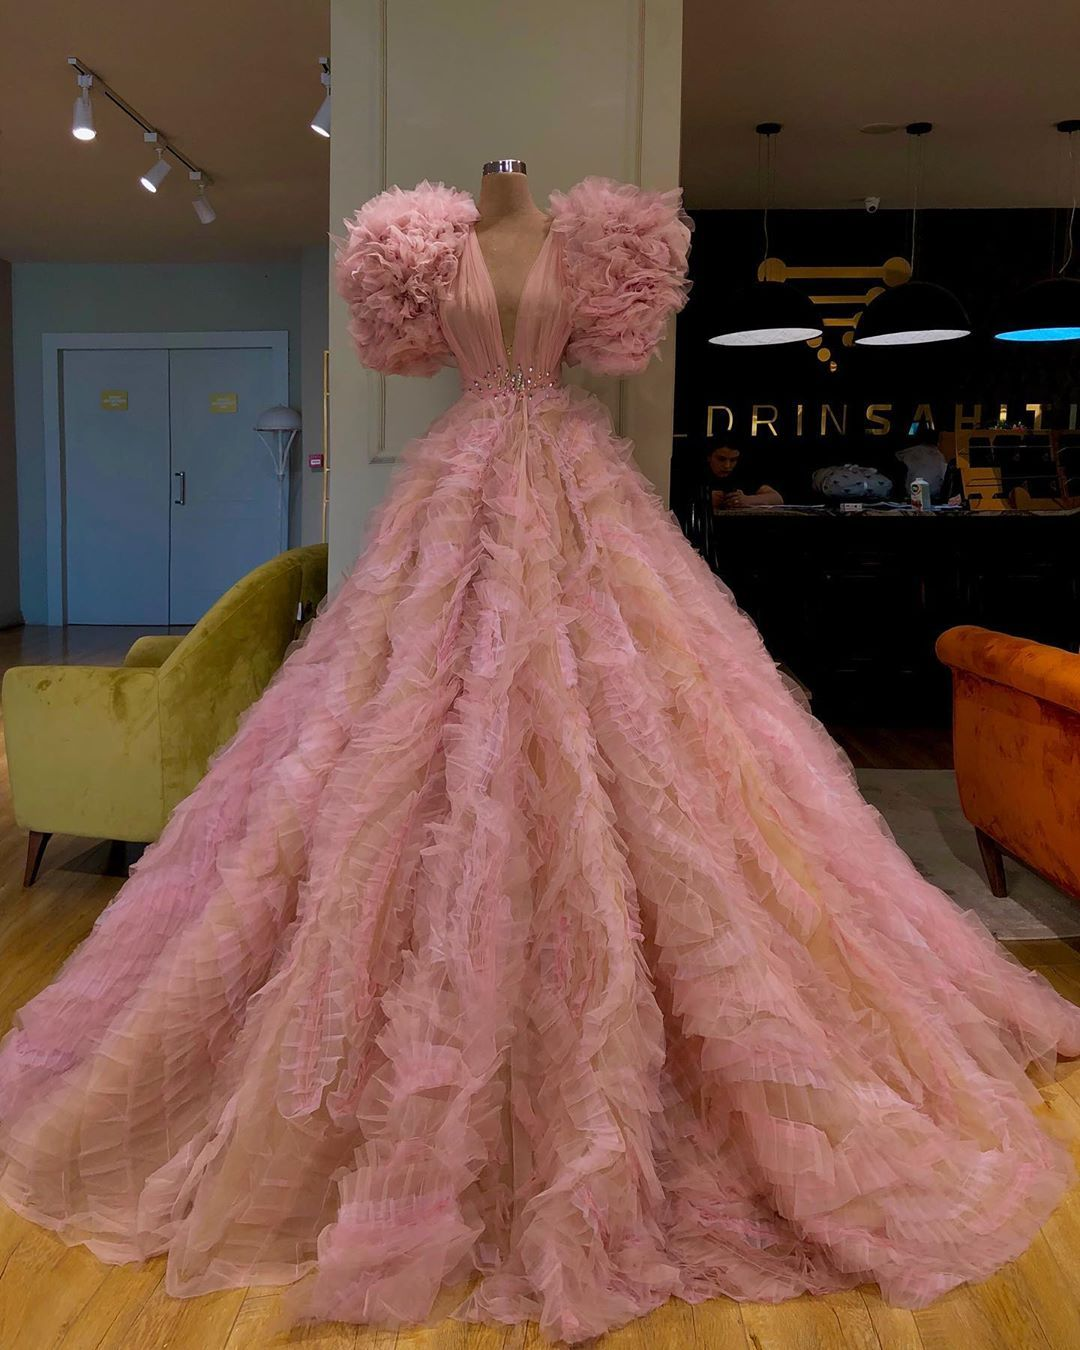 valdrinsahitiofficial | Pretty dresses, Gowns, Couture gowns